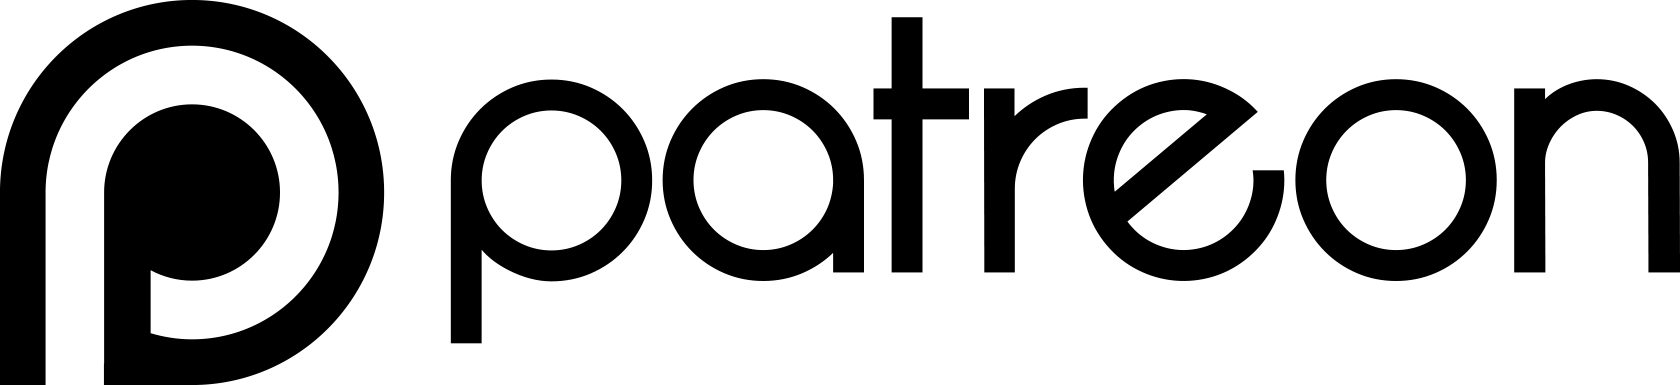 Black Patreon Logo